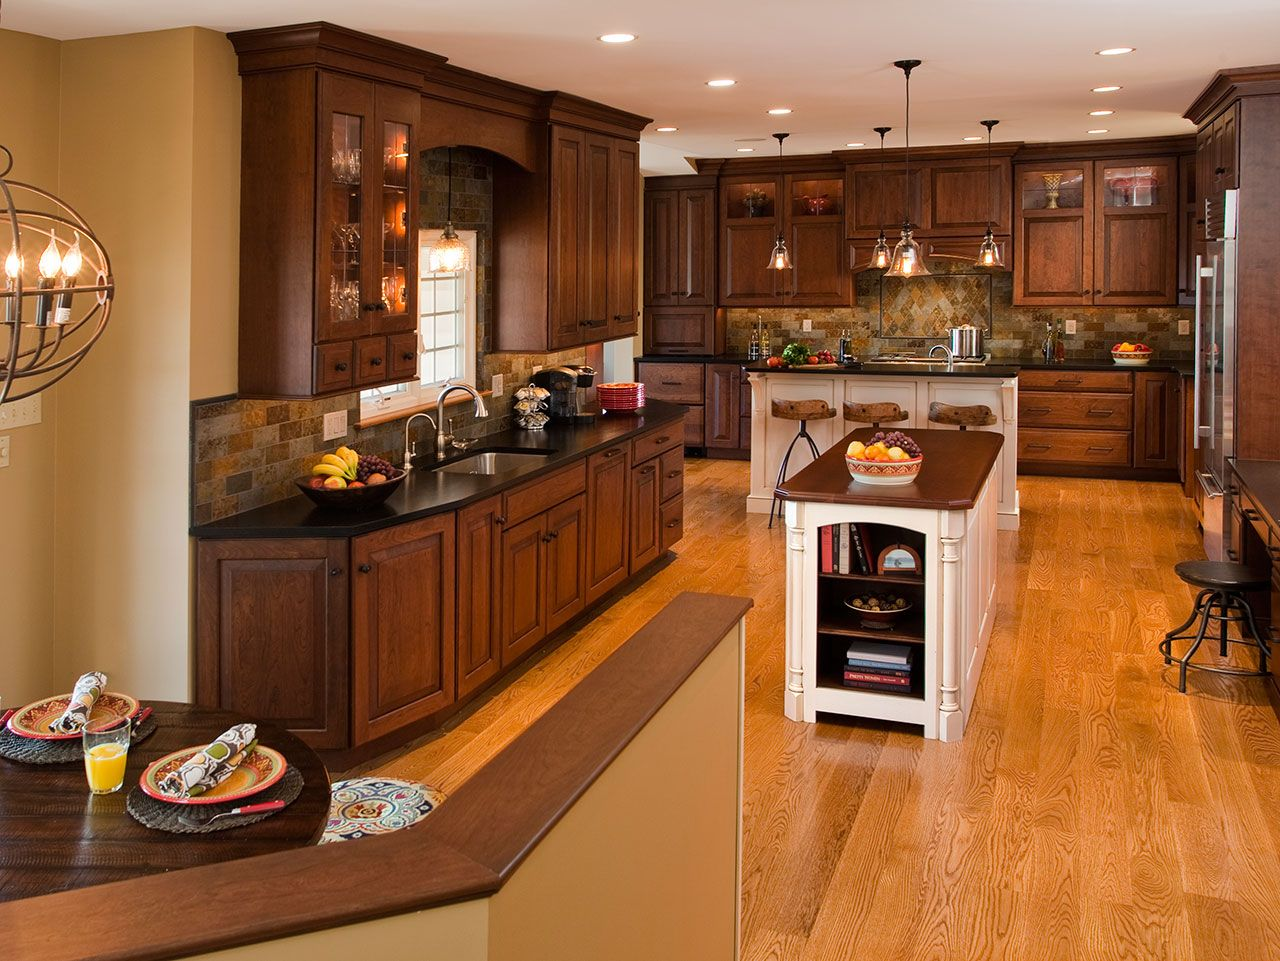 traditional kitchens designs & remodeling services in philadelphia